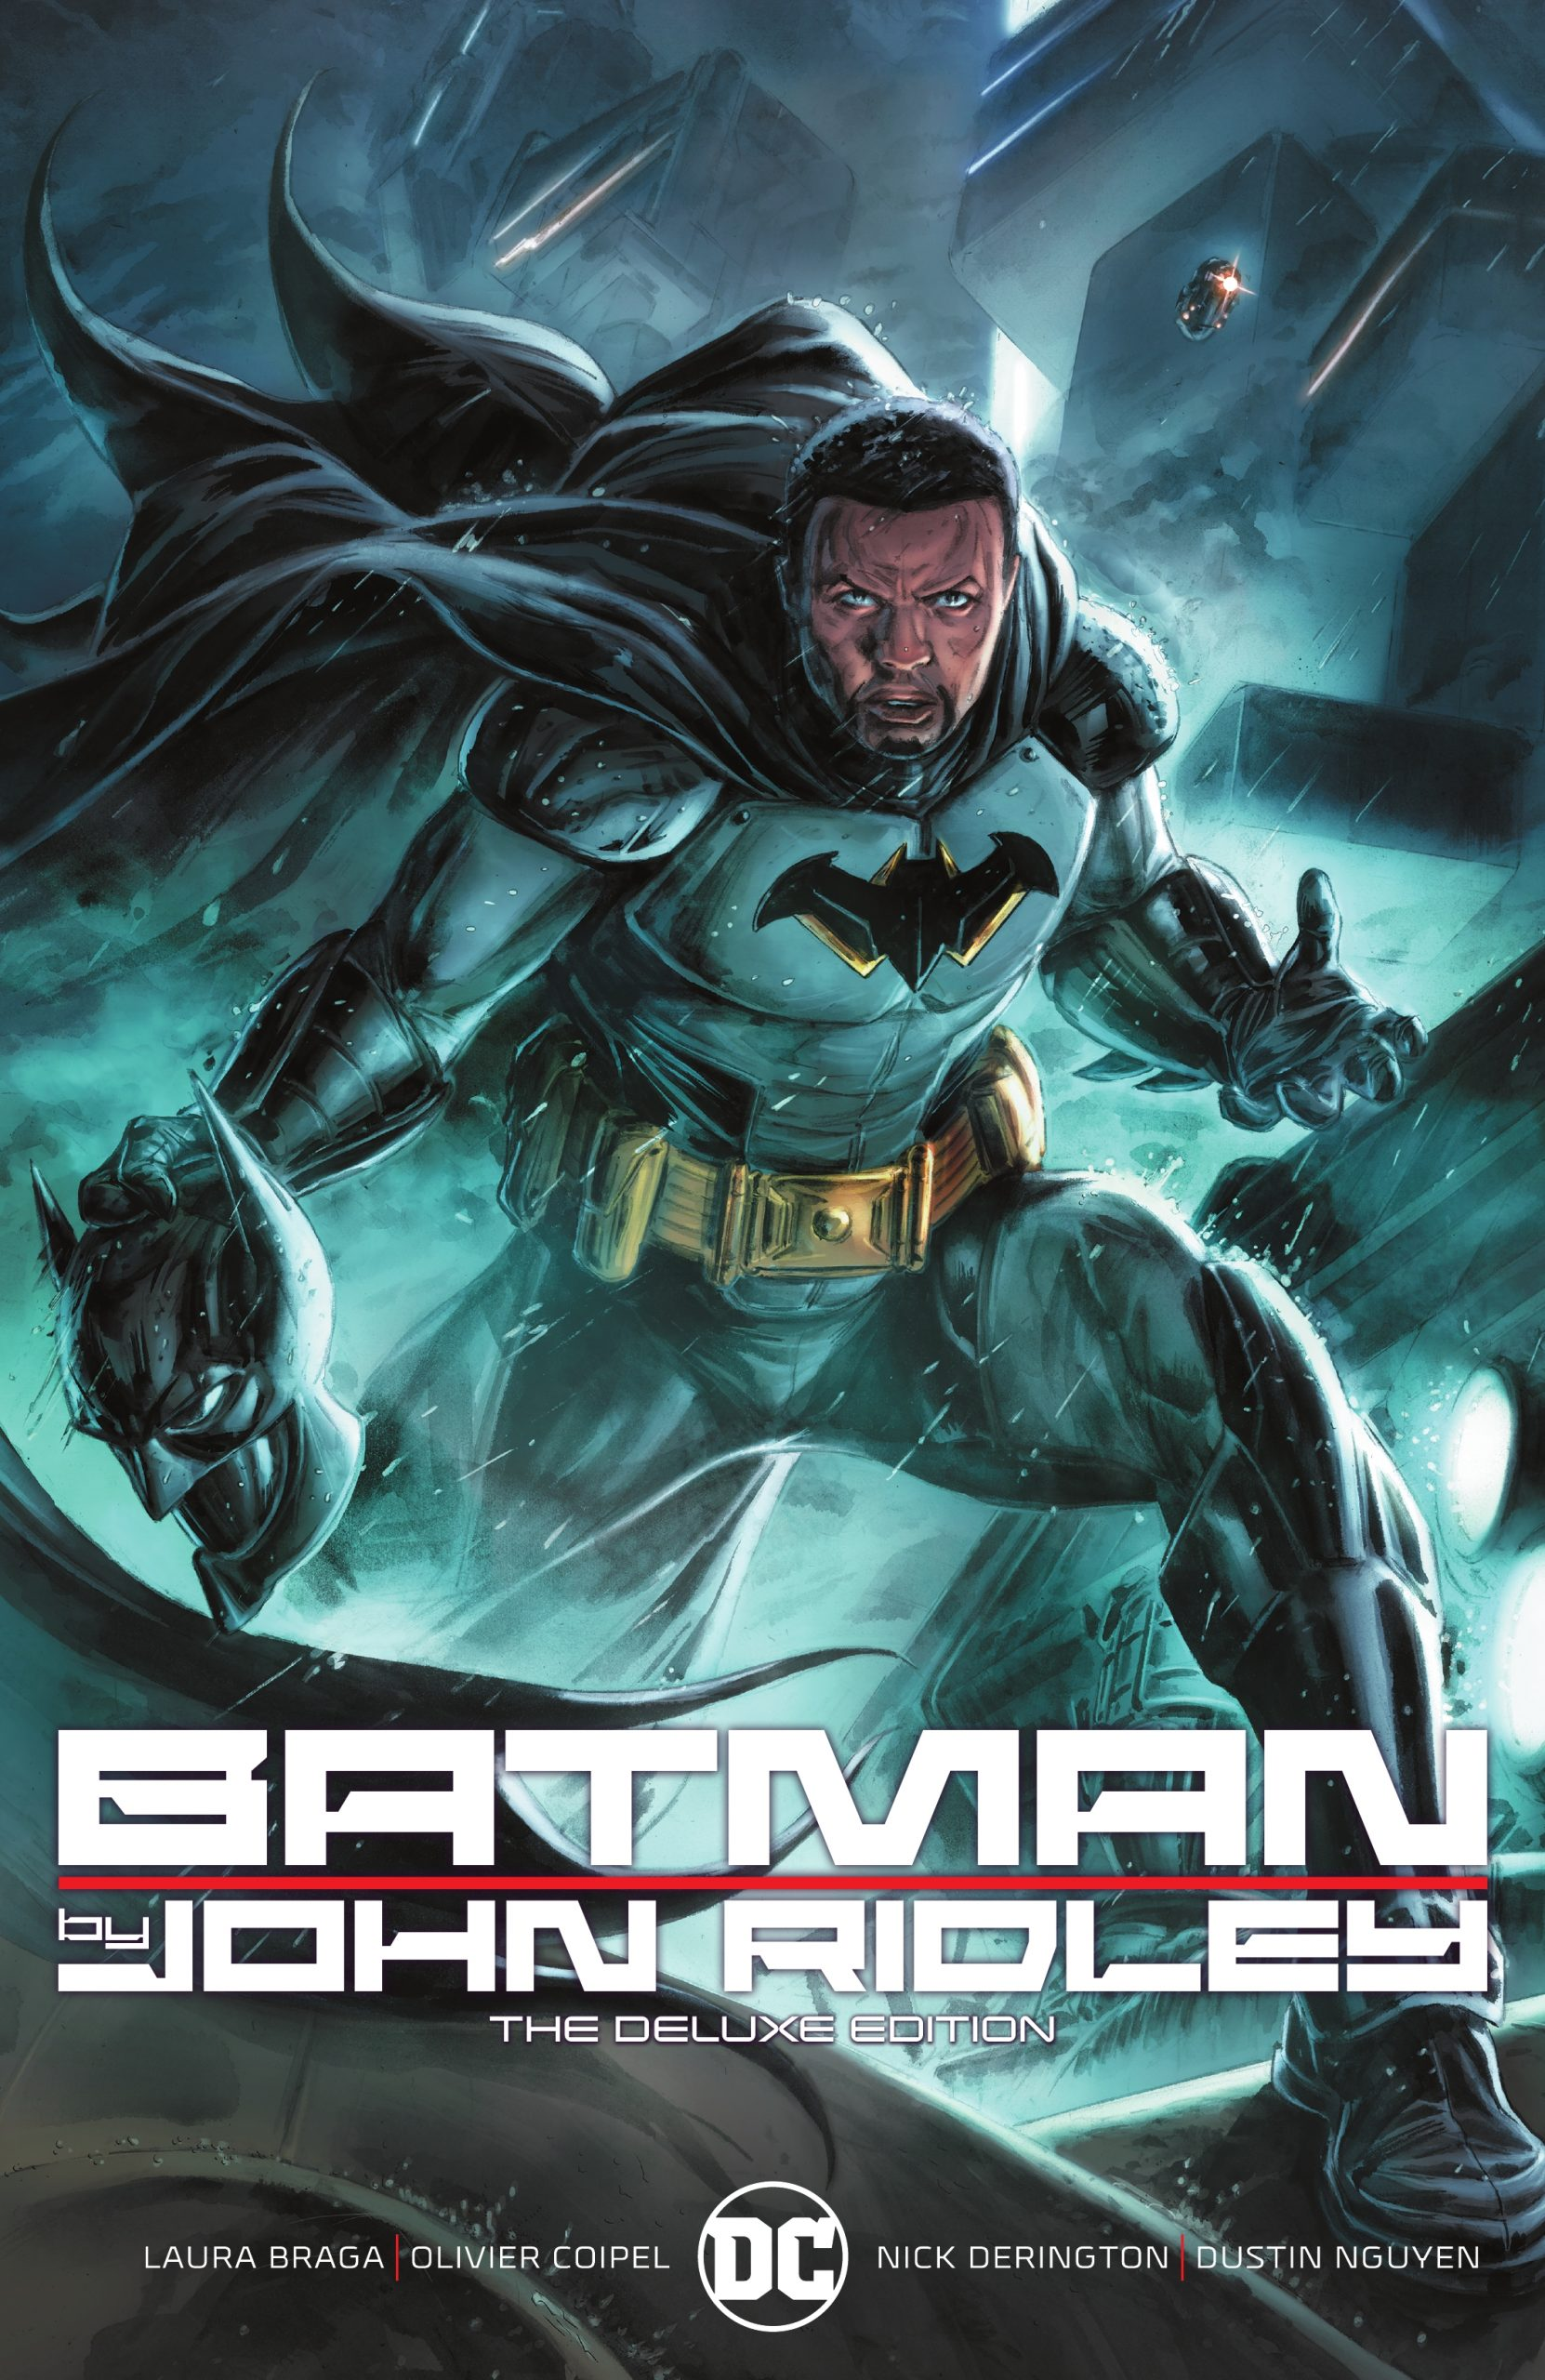 Batman By John Ridley Deluxe Edition 1 HC spoilers 0 1 scaled 1 Recent Comic Cover Updates For The Week Ending 2021 07 09